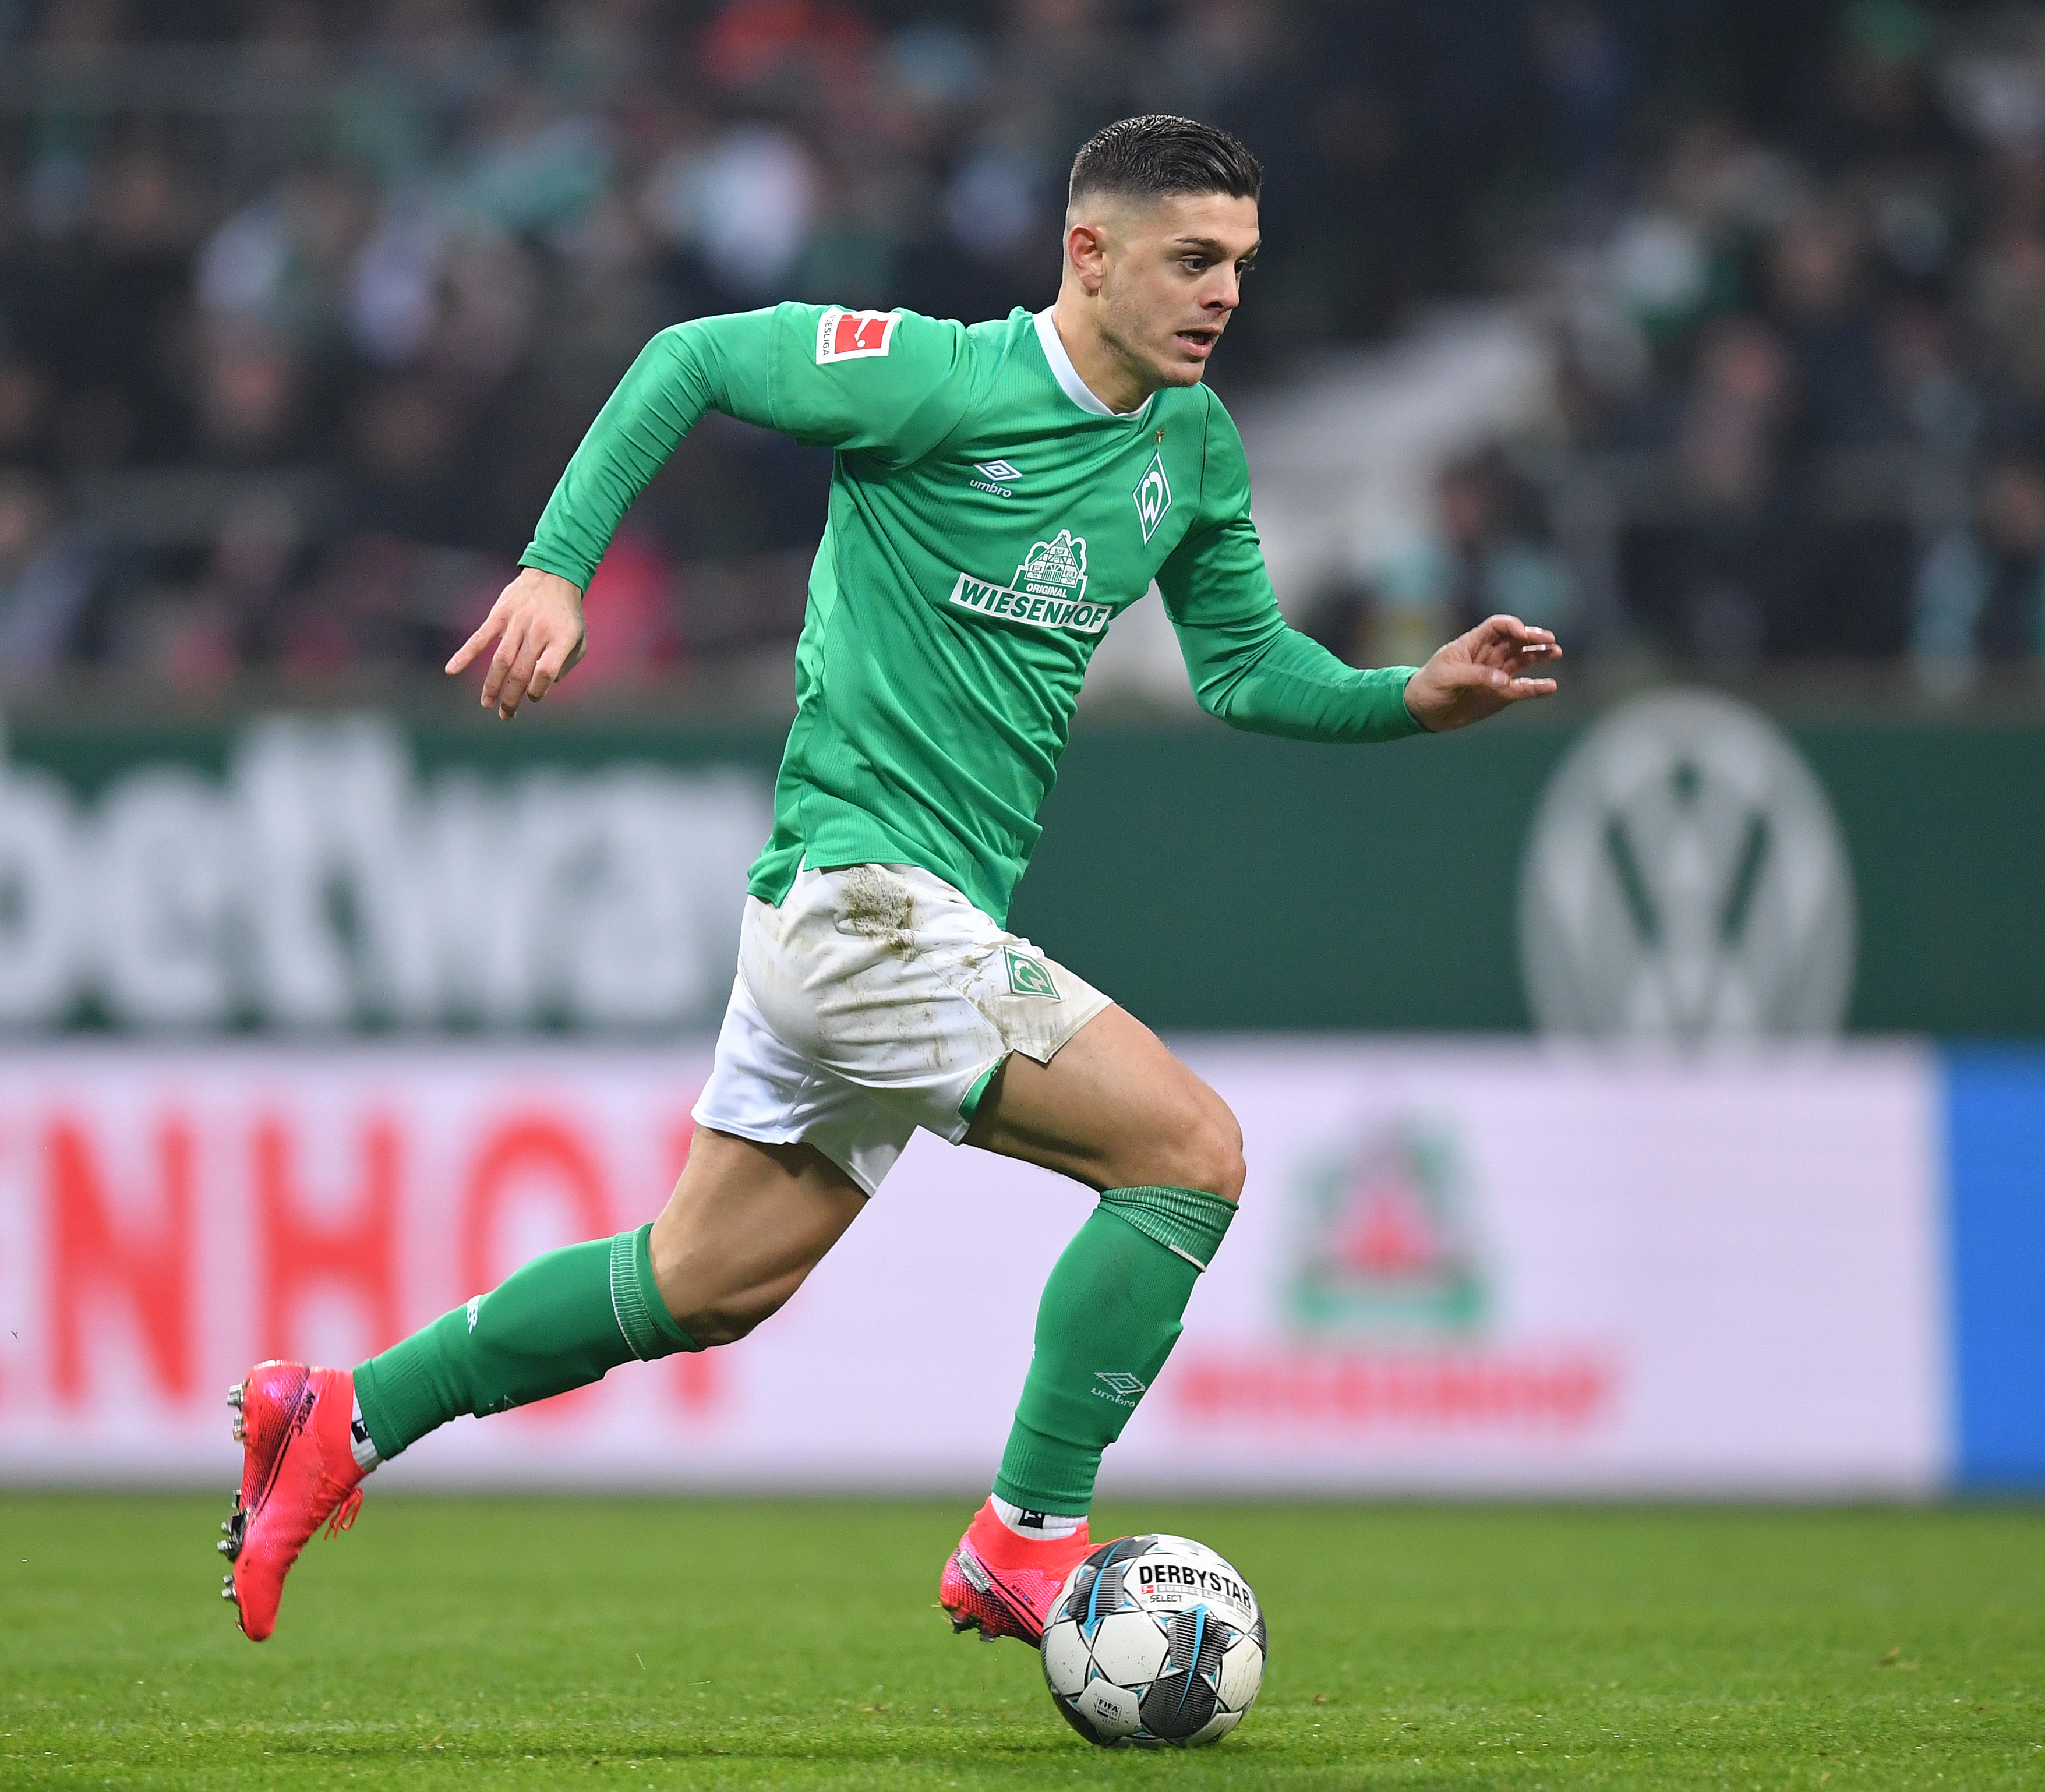 Aston Villa Interested In Milot Rashica - Rashica in action during a match